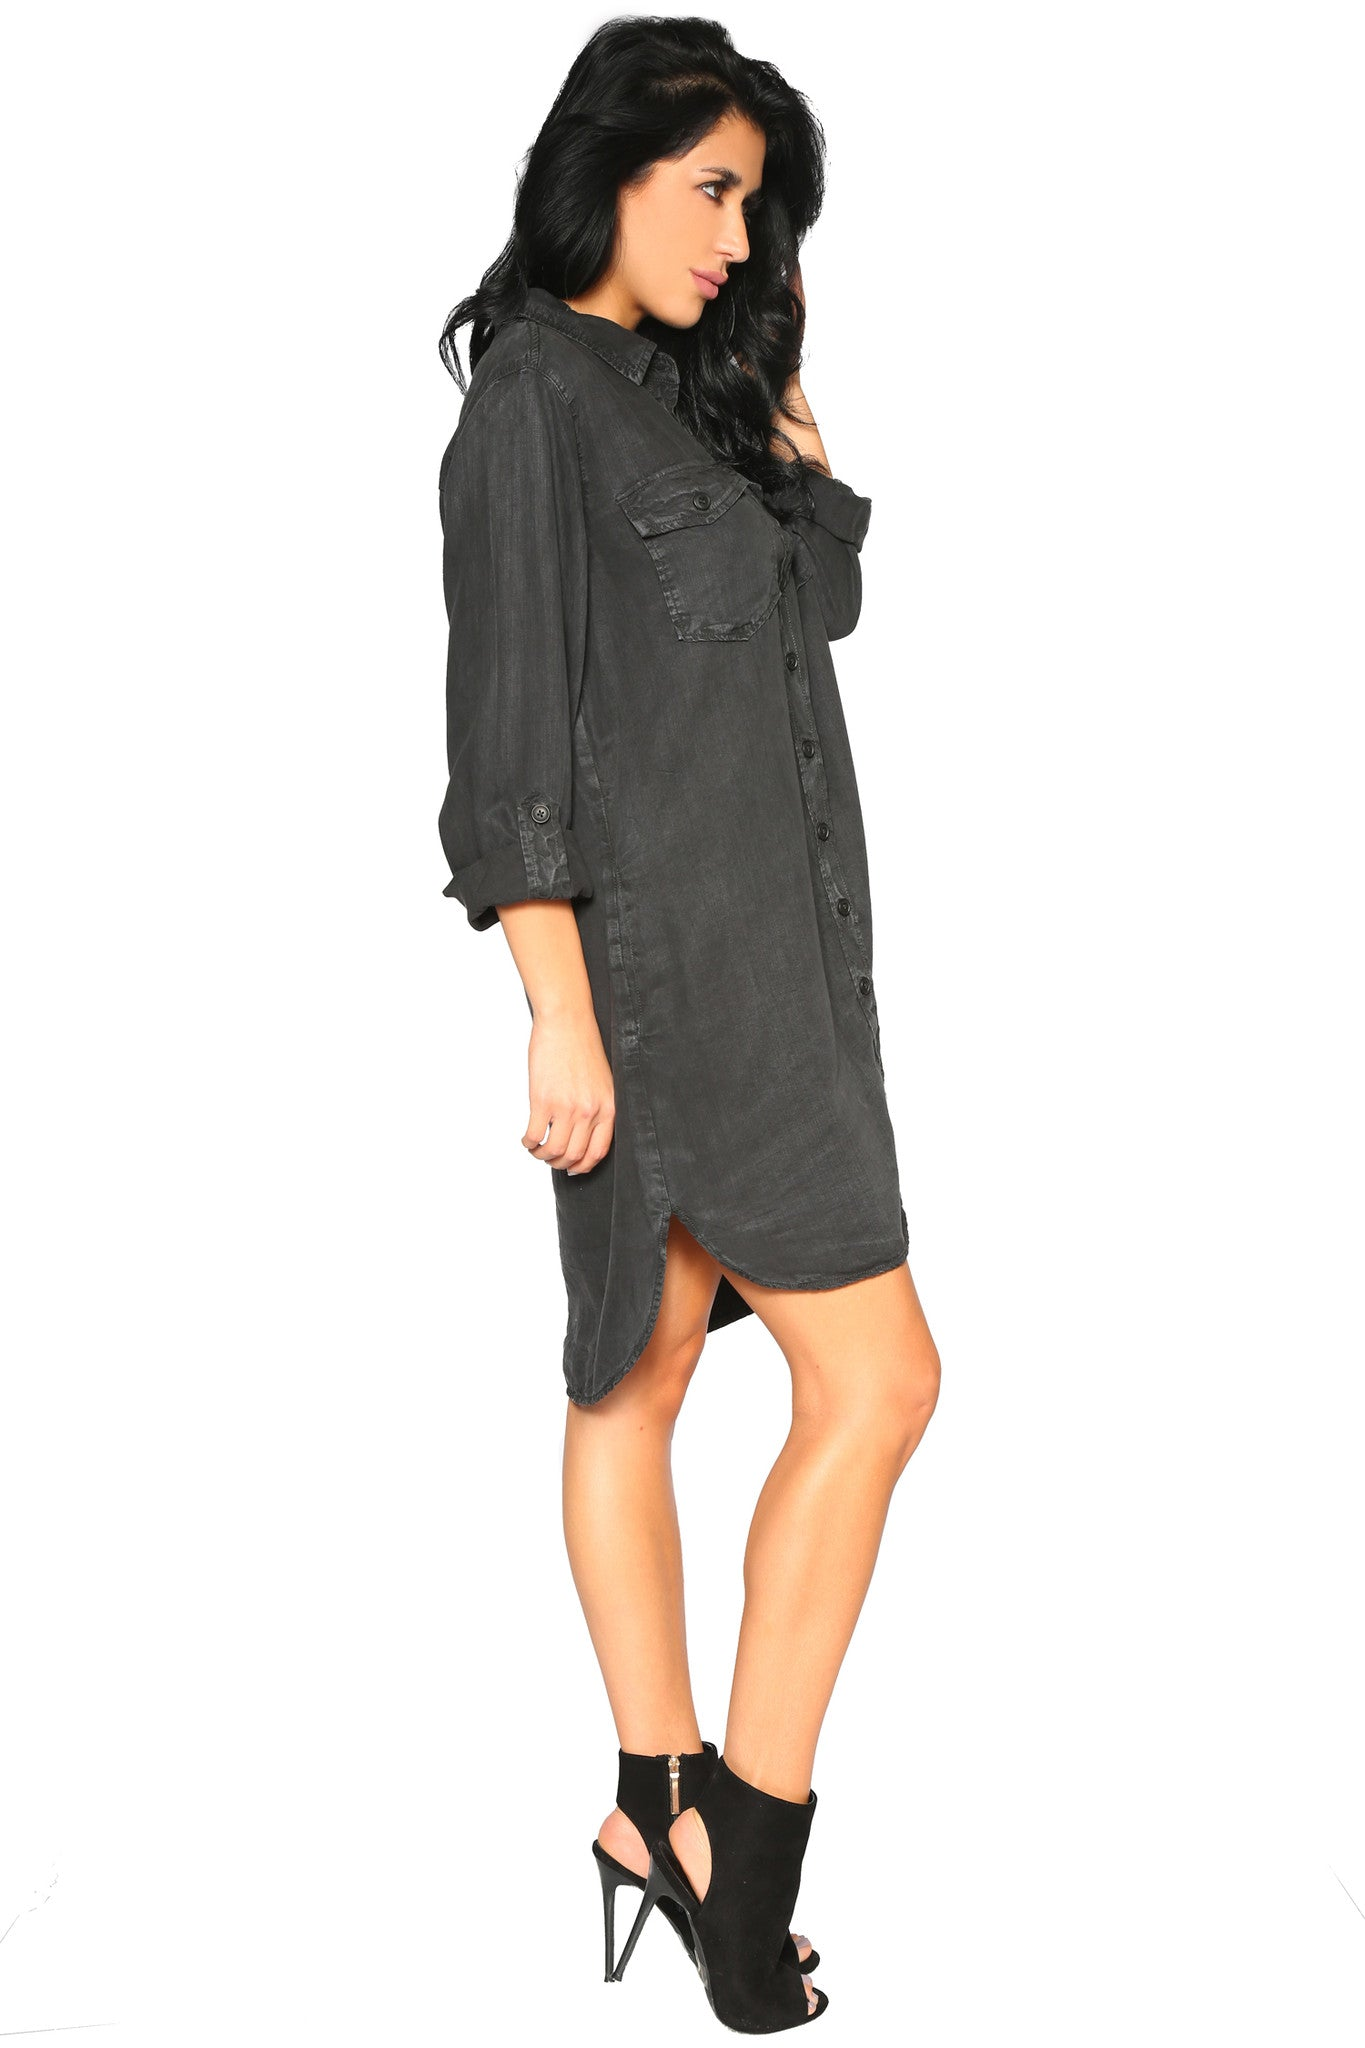 NATASHA SHIRT DRESS - Glam Envy - 2